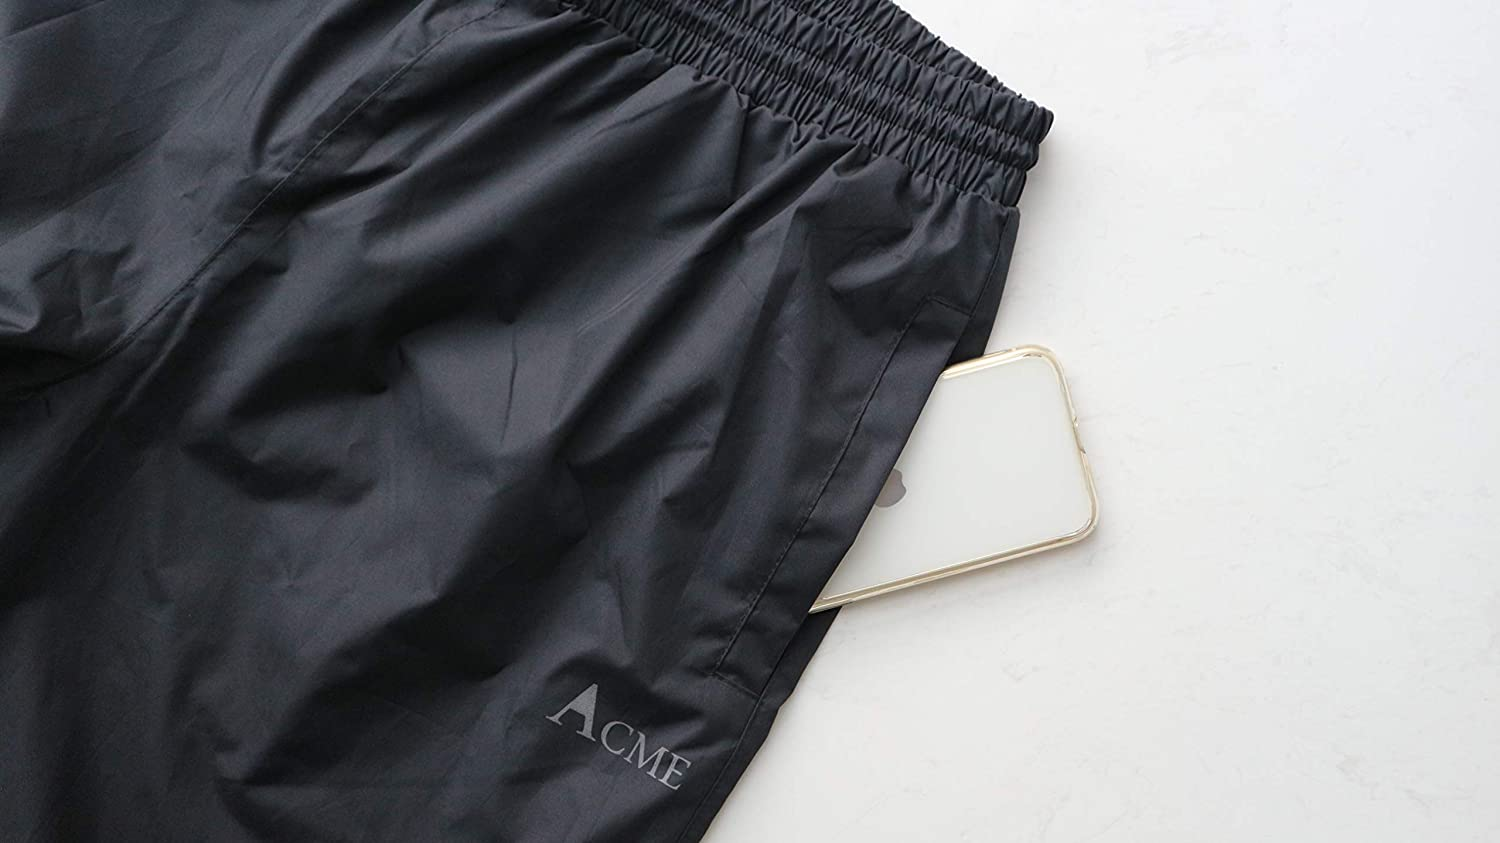 Breathable Taped Seam 10000mm//3000gm/… 100/% Waterproof Acme Projects Rain Pants